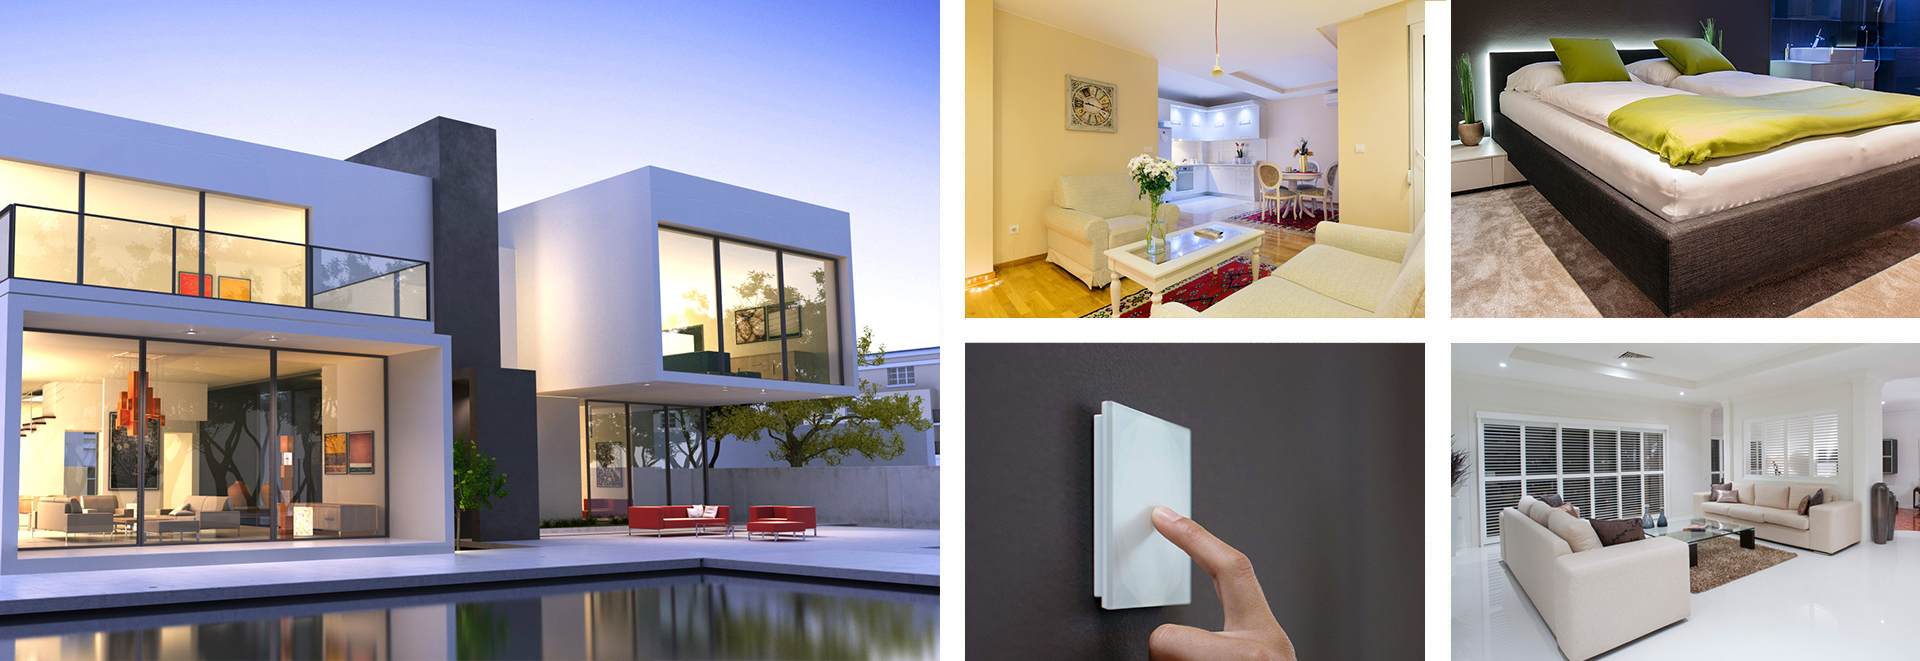 Smarthome Nord Loxone Real Smart Home Selent Collage